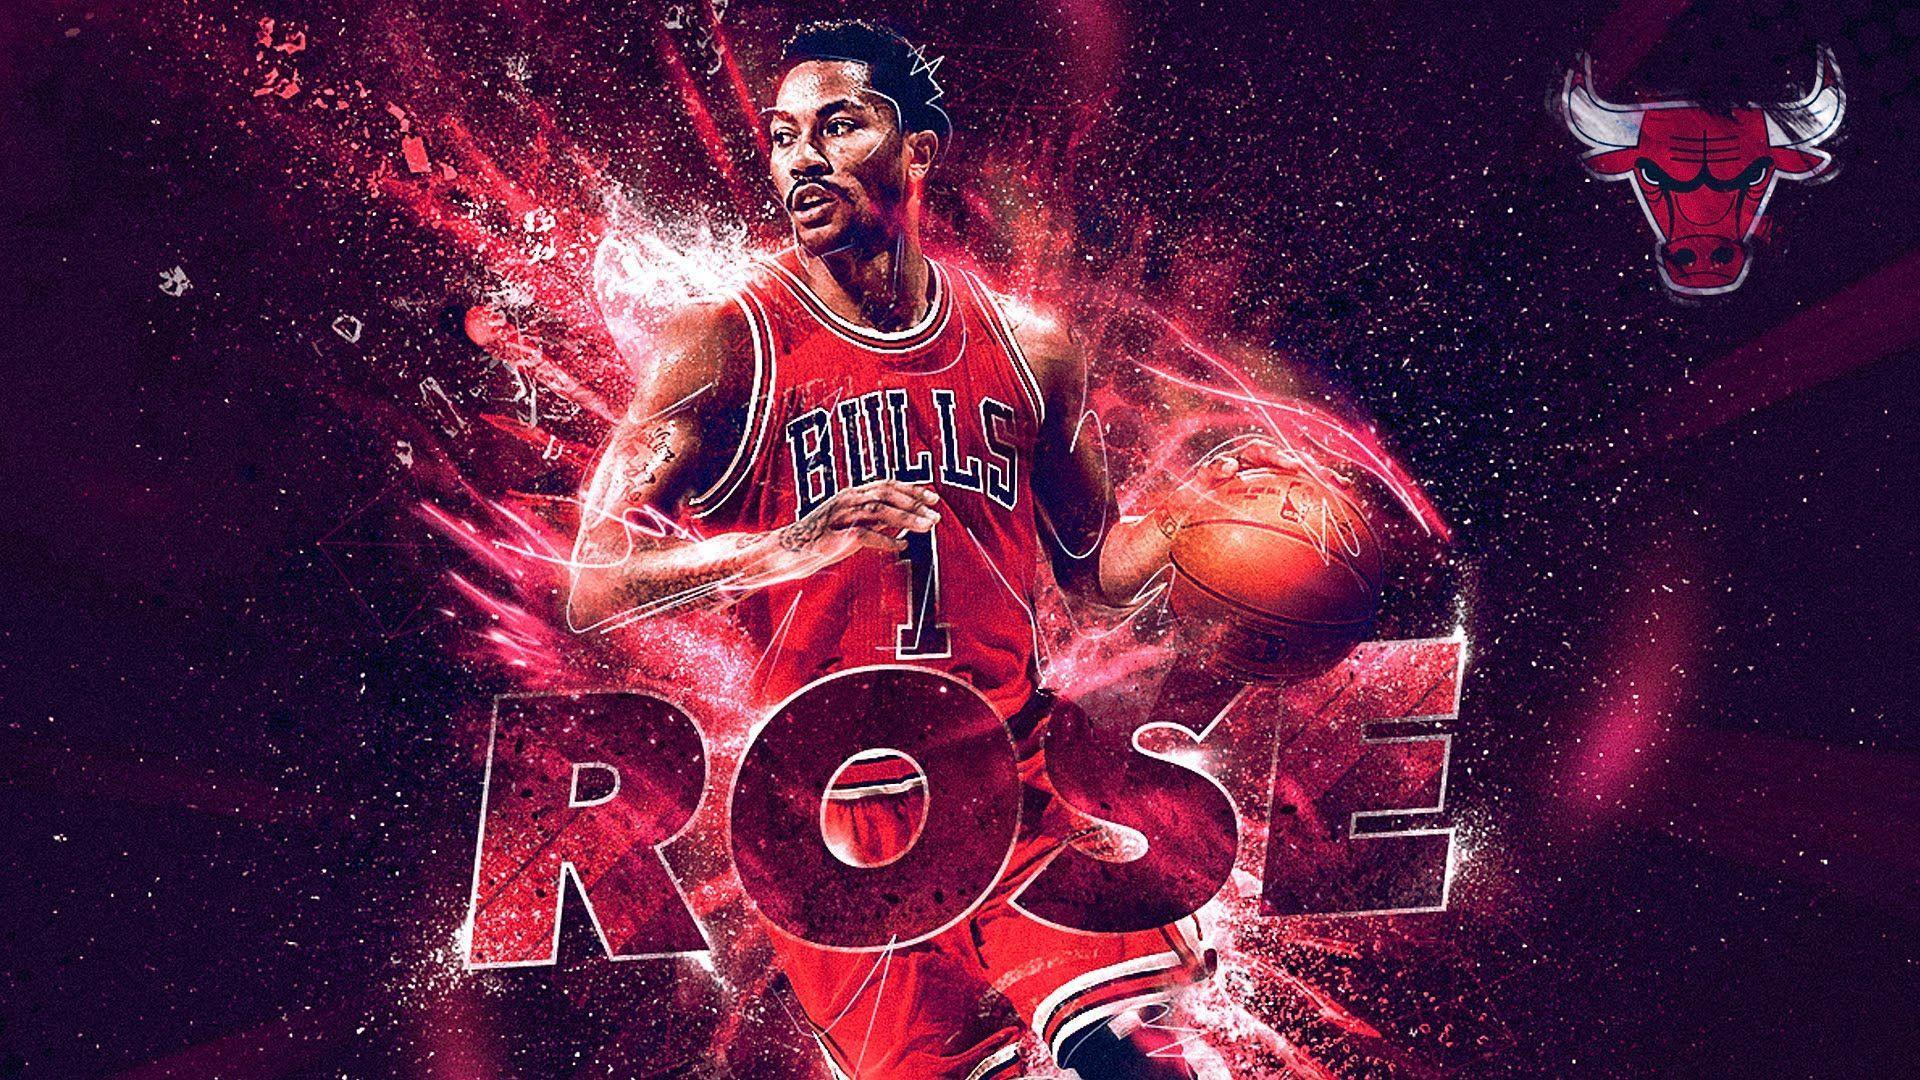 3b6f2892286 Derrick Rose s Top 10 Plays of 2014-2015 Season! - YouTube